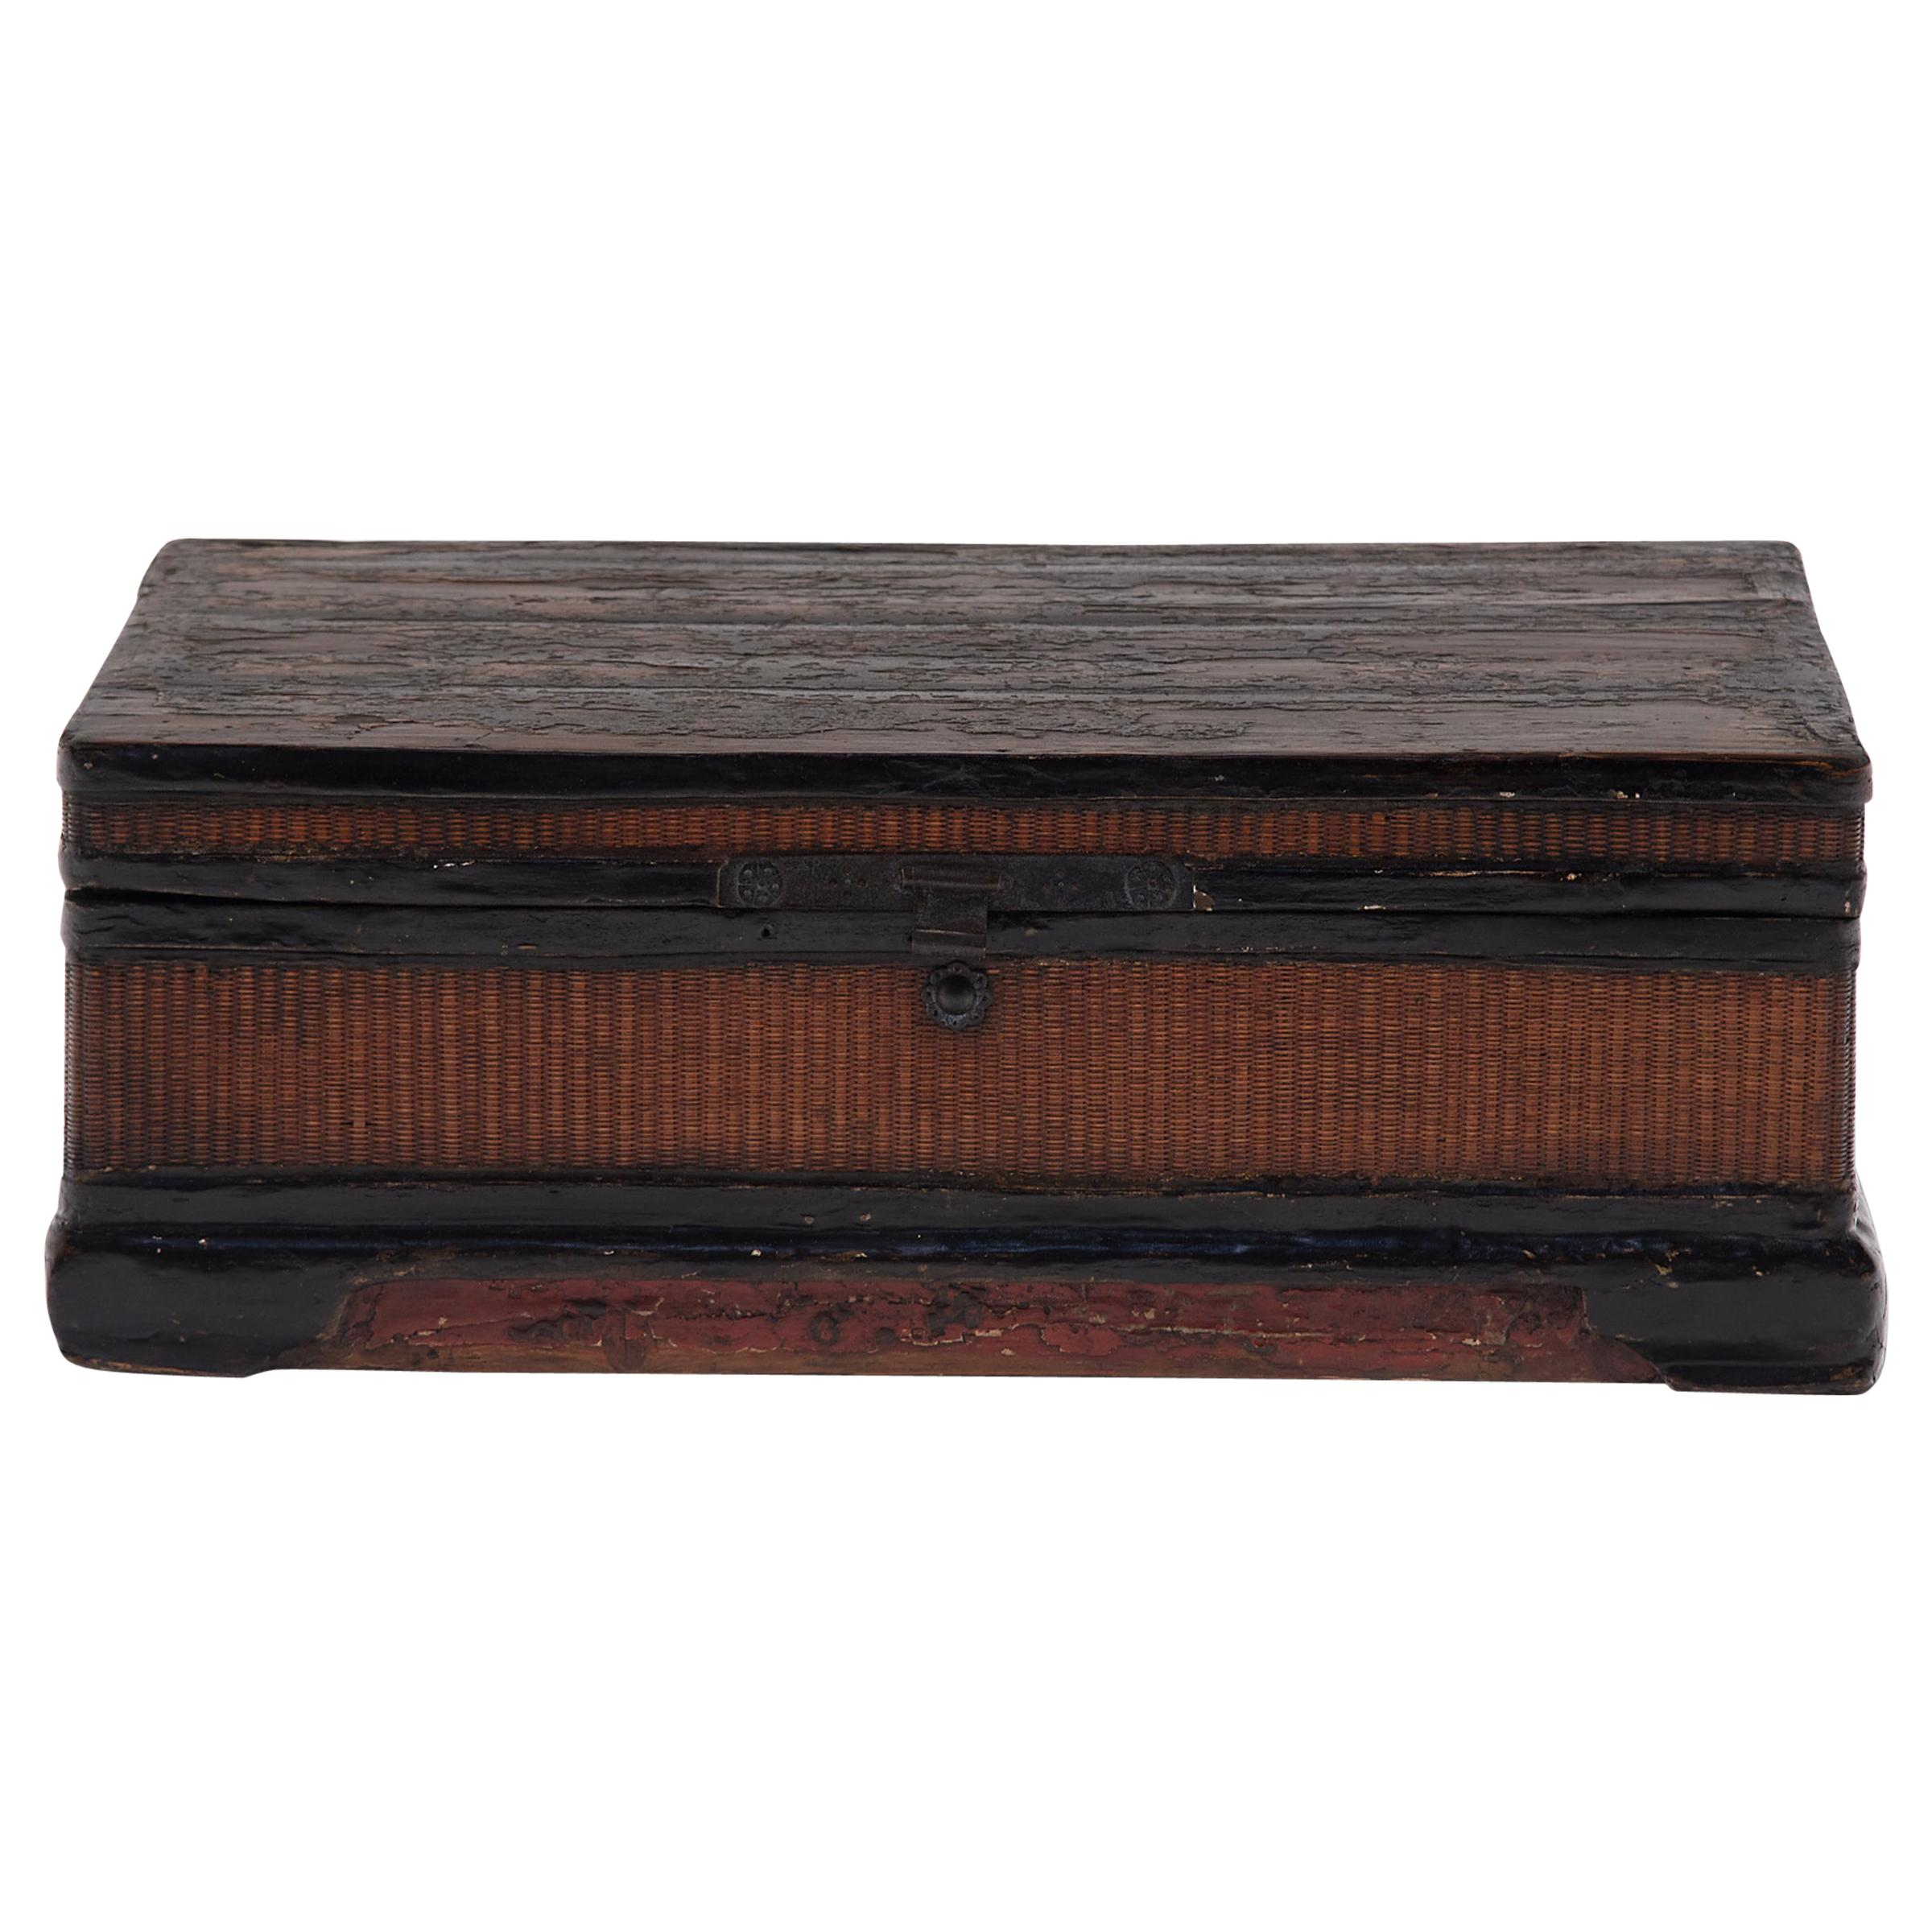 19th Century Chinese Finely Woven Lacquered Trunk